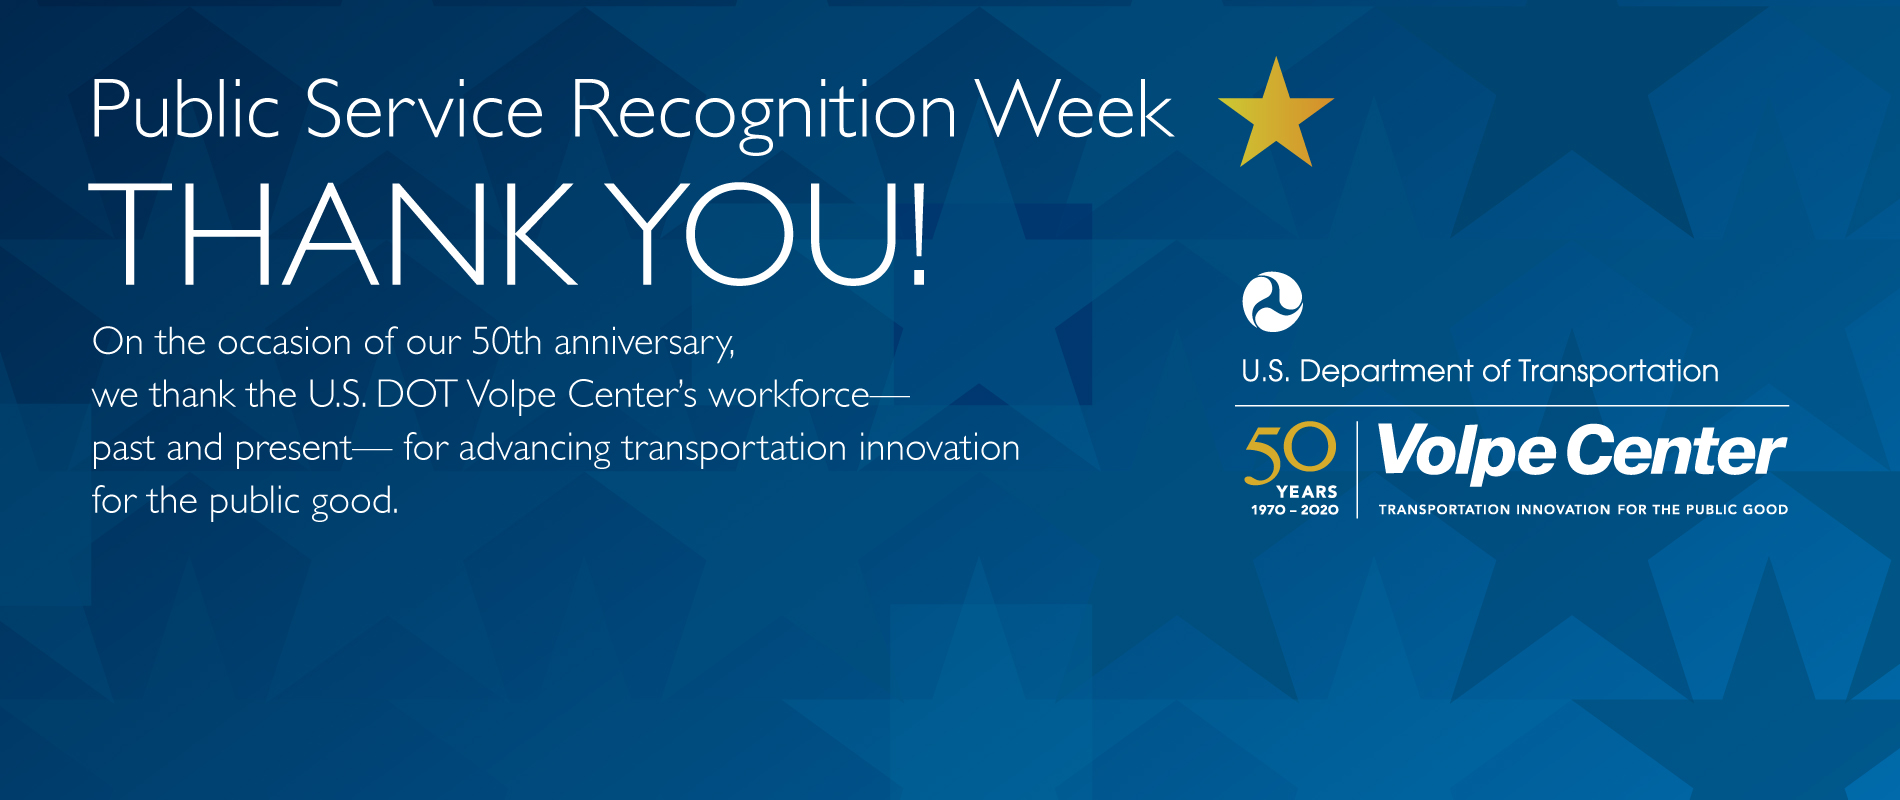 """Thank you"" sign for Public Service Recognition Week"